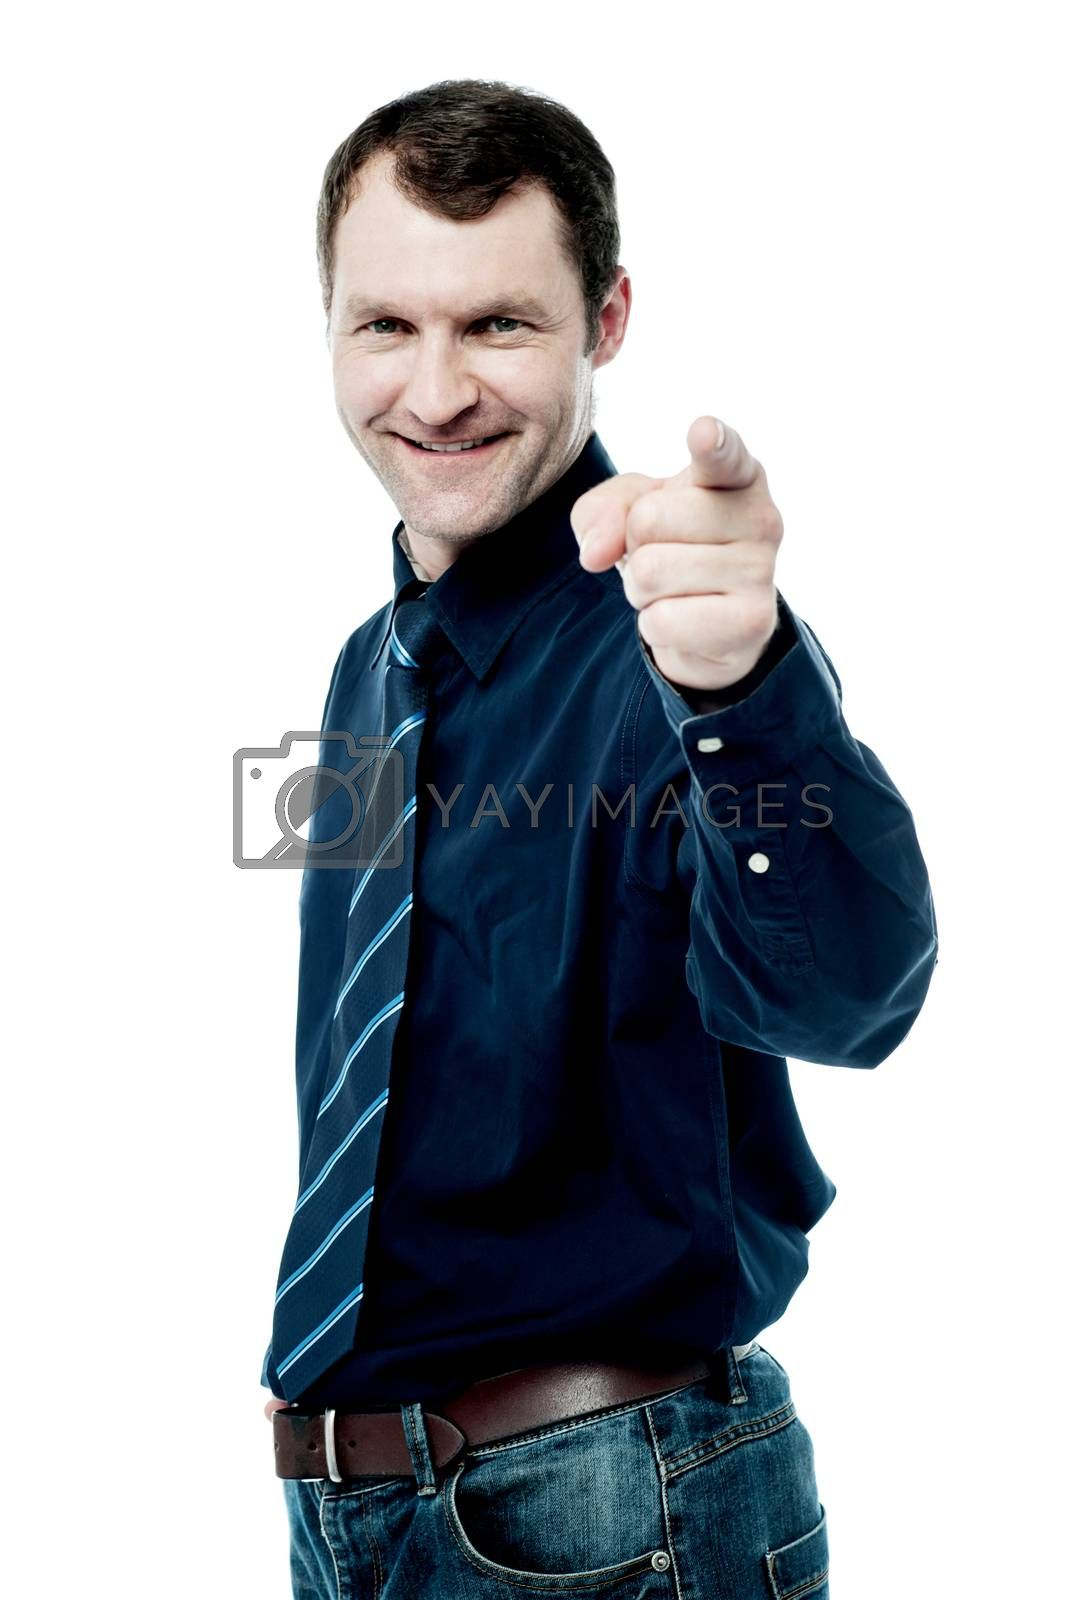 Corporate male pointing his finger towards camera